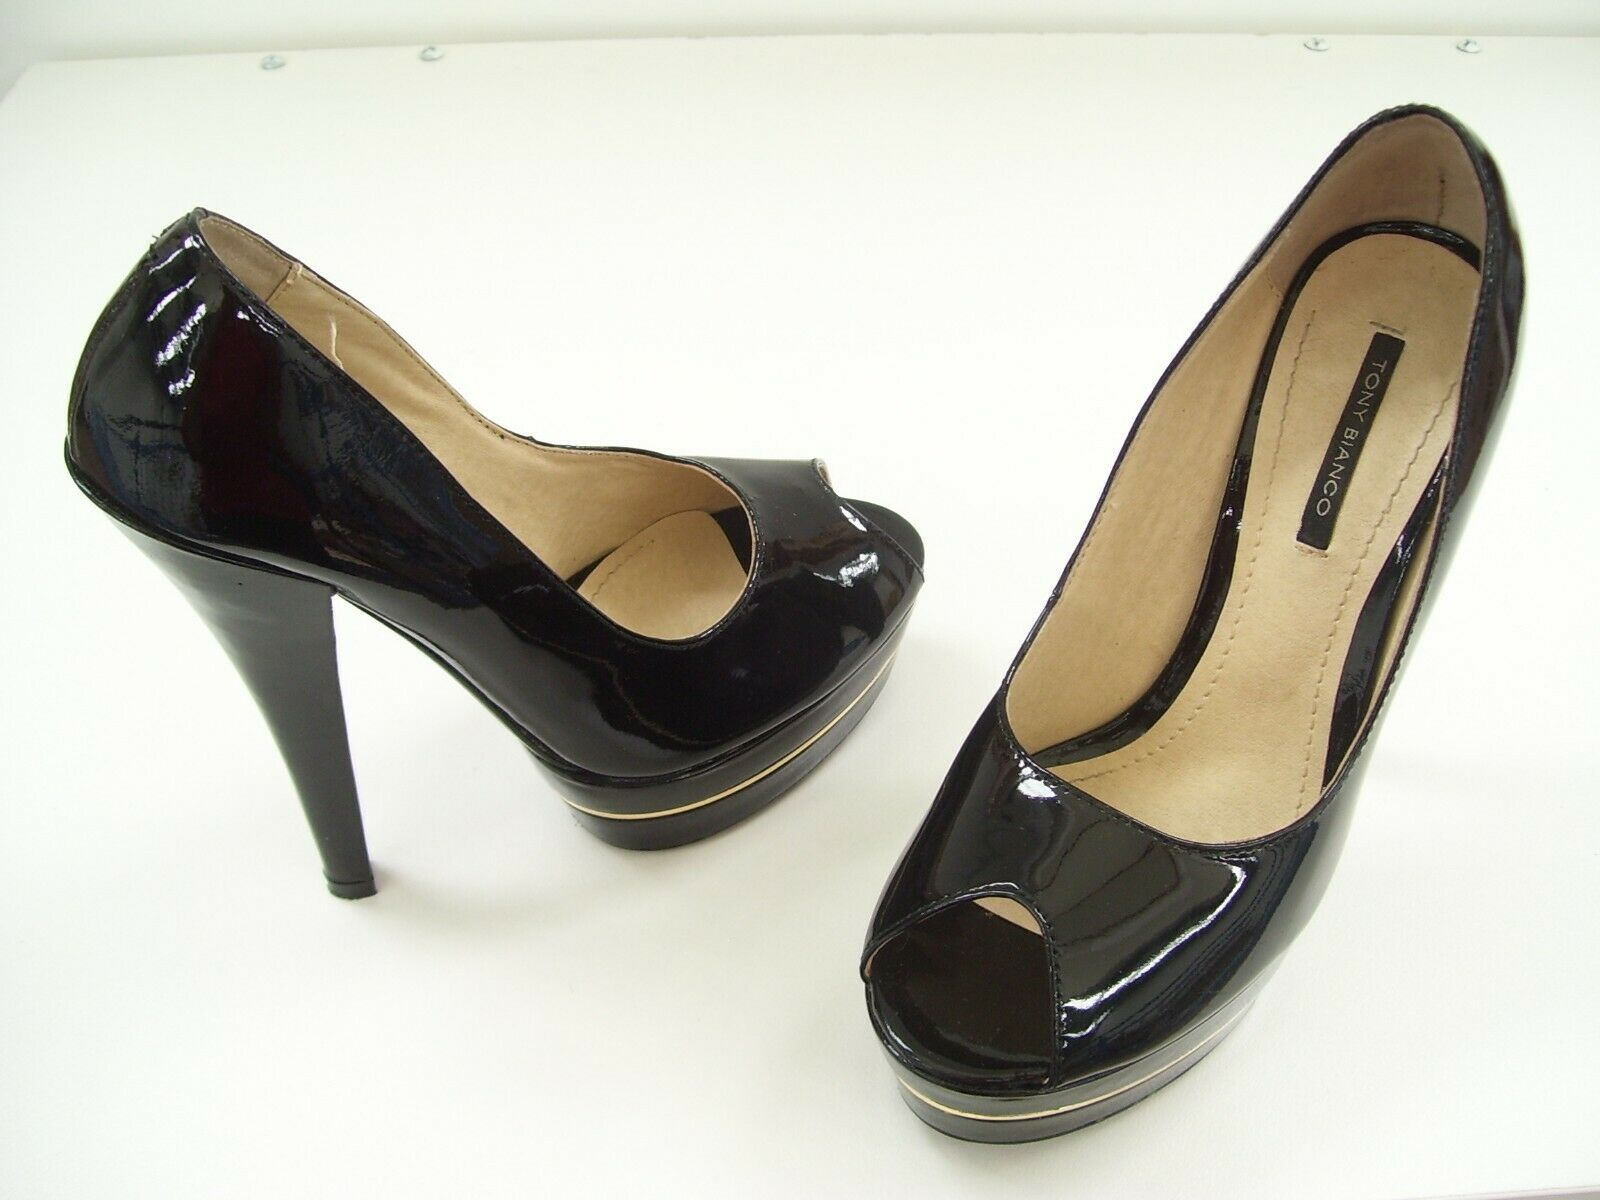 TONY BIANCO LADIES schwarz PATENT PEEP TOE leder schuhe fersen DRESS FORMAL Größe 6